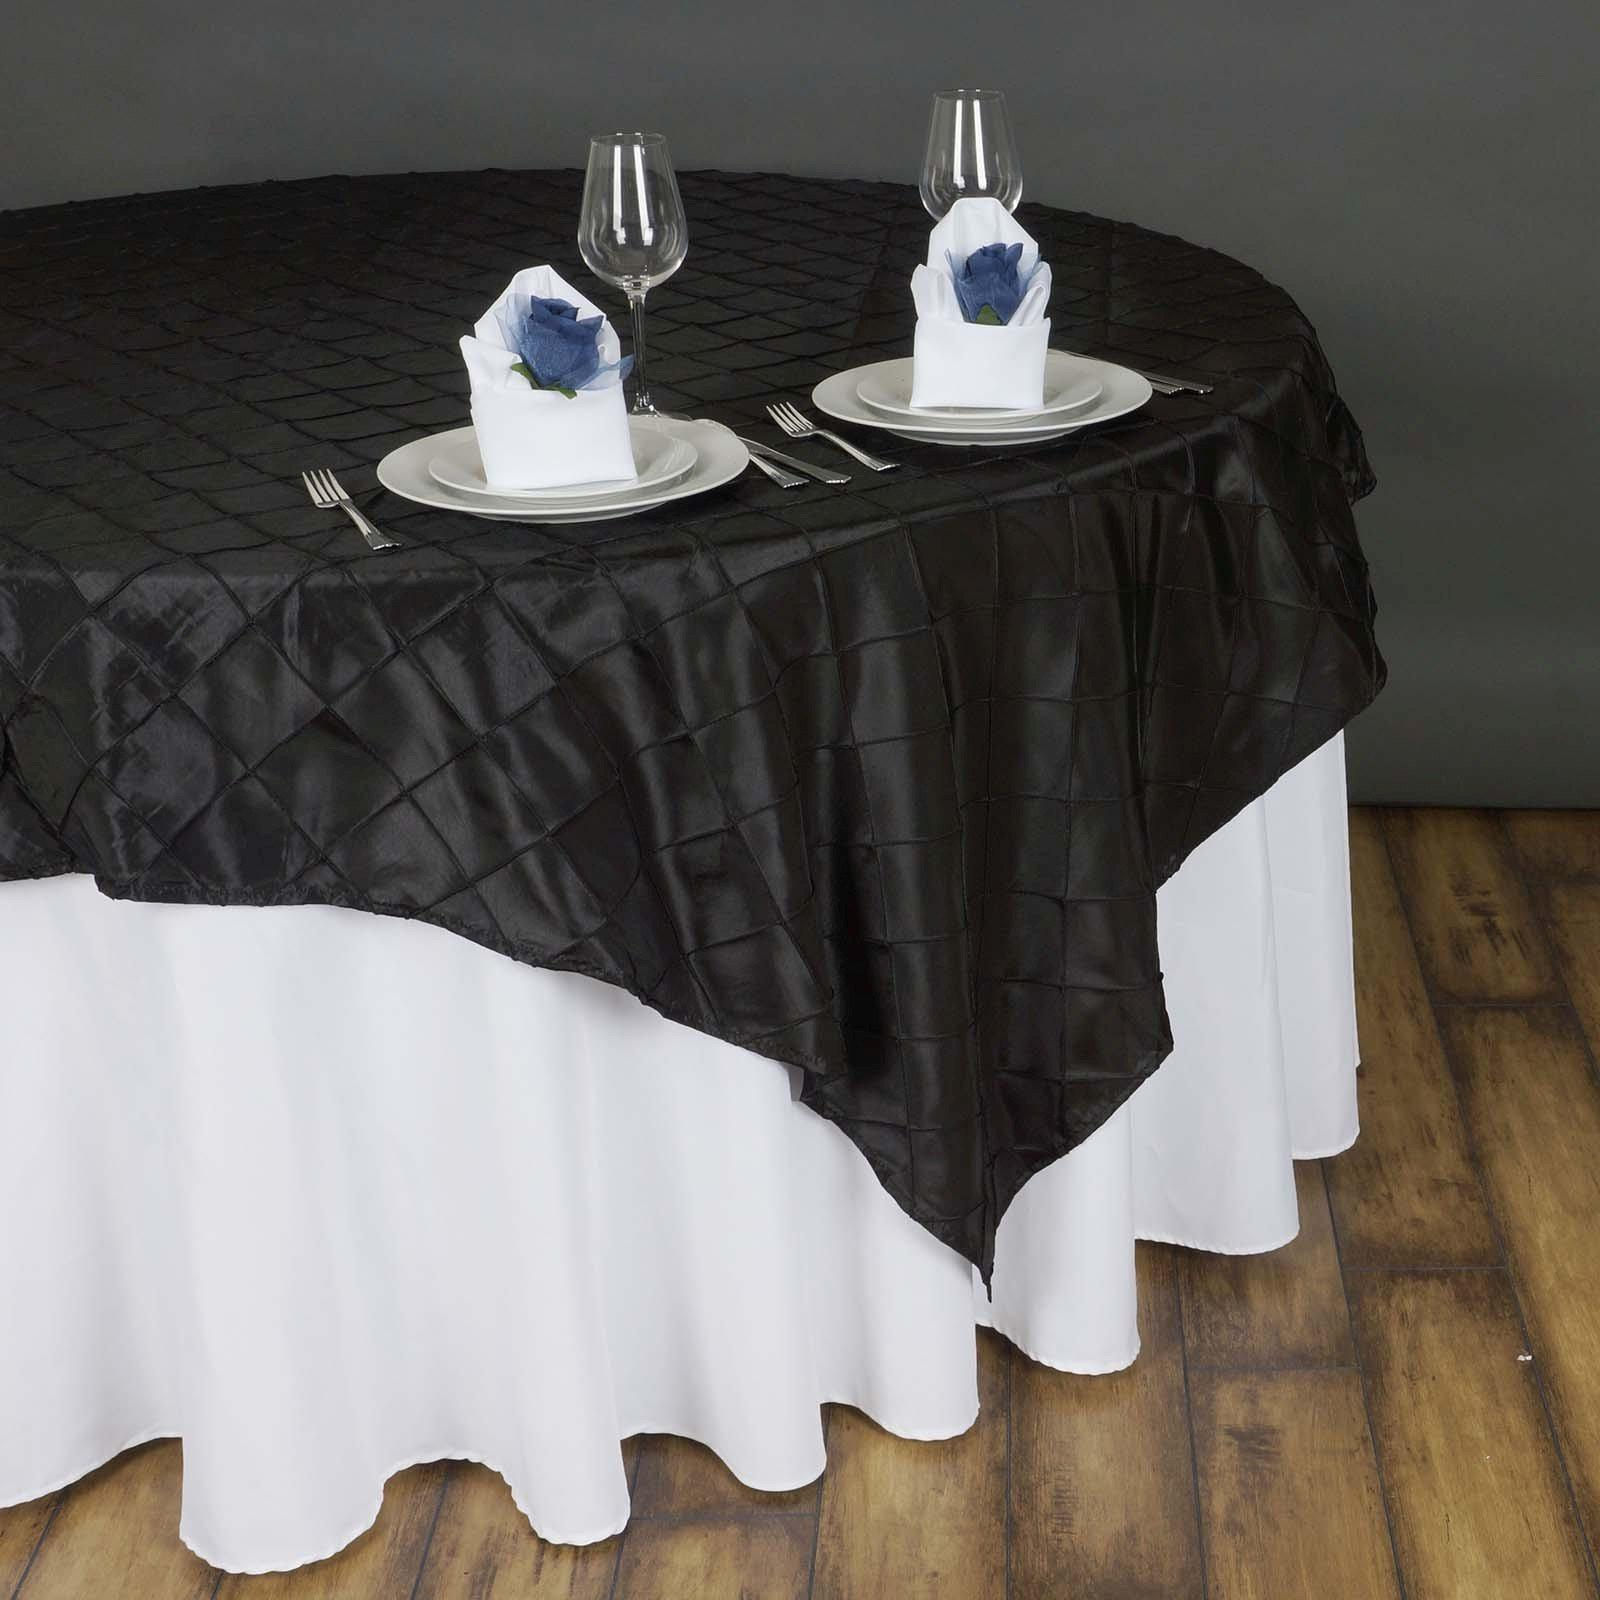 85 overlay pintuck black tablecloths factory for 85 table overlay